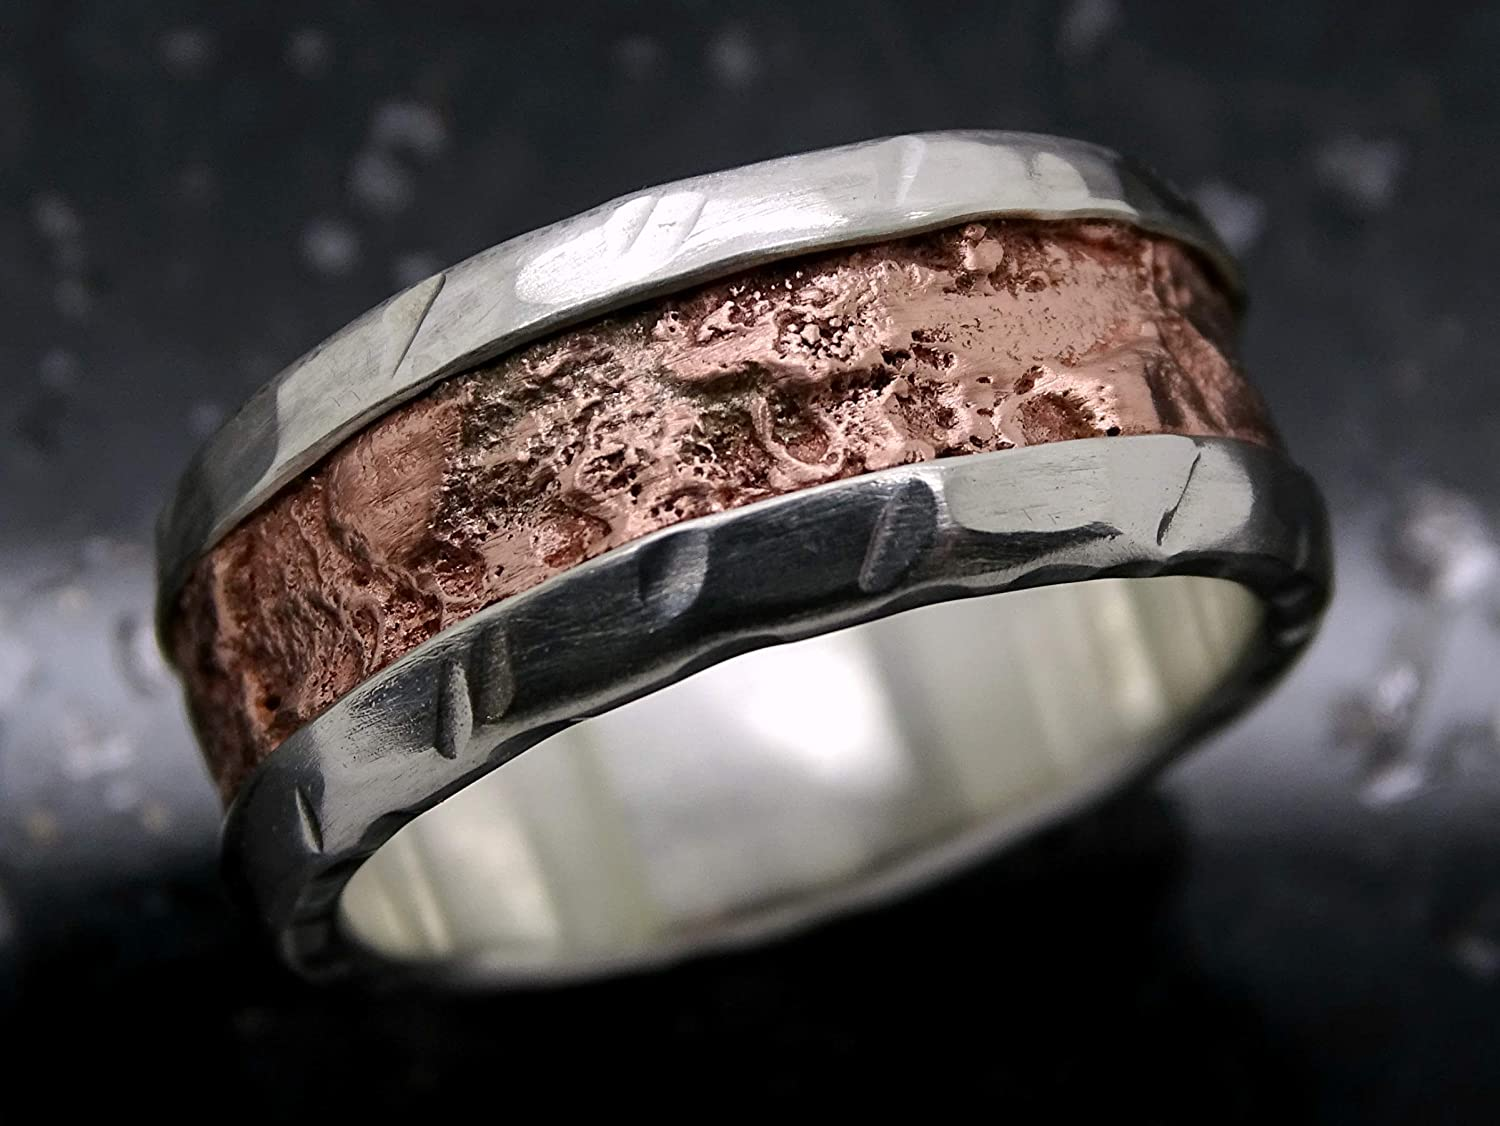 Mens Wedding Band Cool Mens Ring Copper Silver Unique Mixed Metal Ring Rugged Mens Ring Engagement Ring For Men Anniversary Gift For Him Rings Wedding